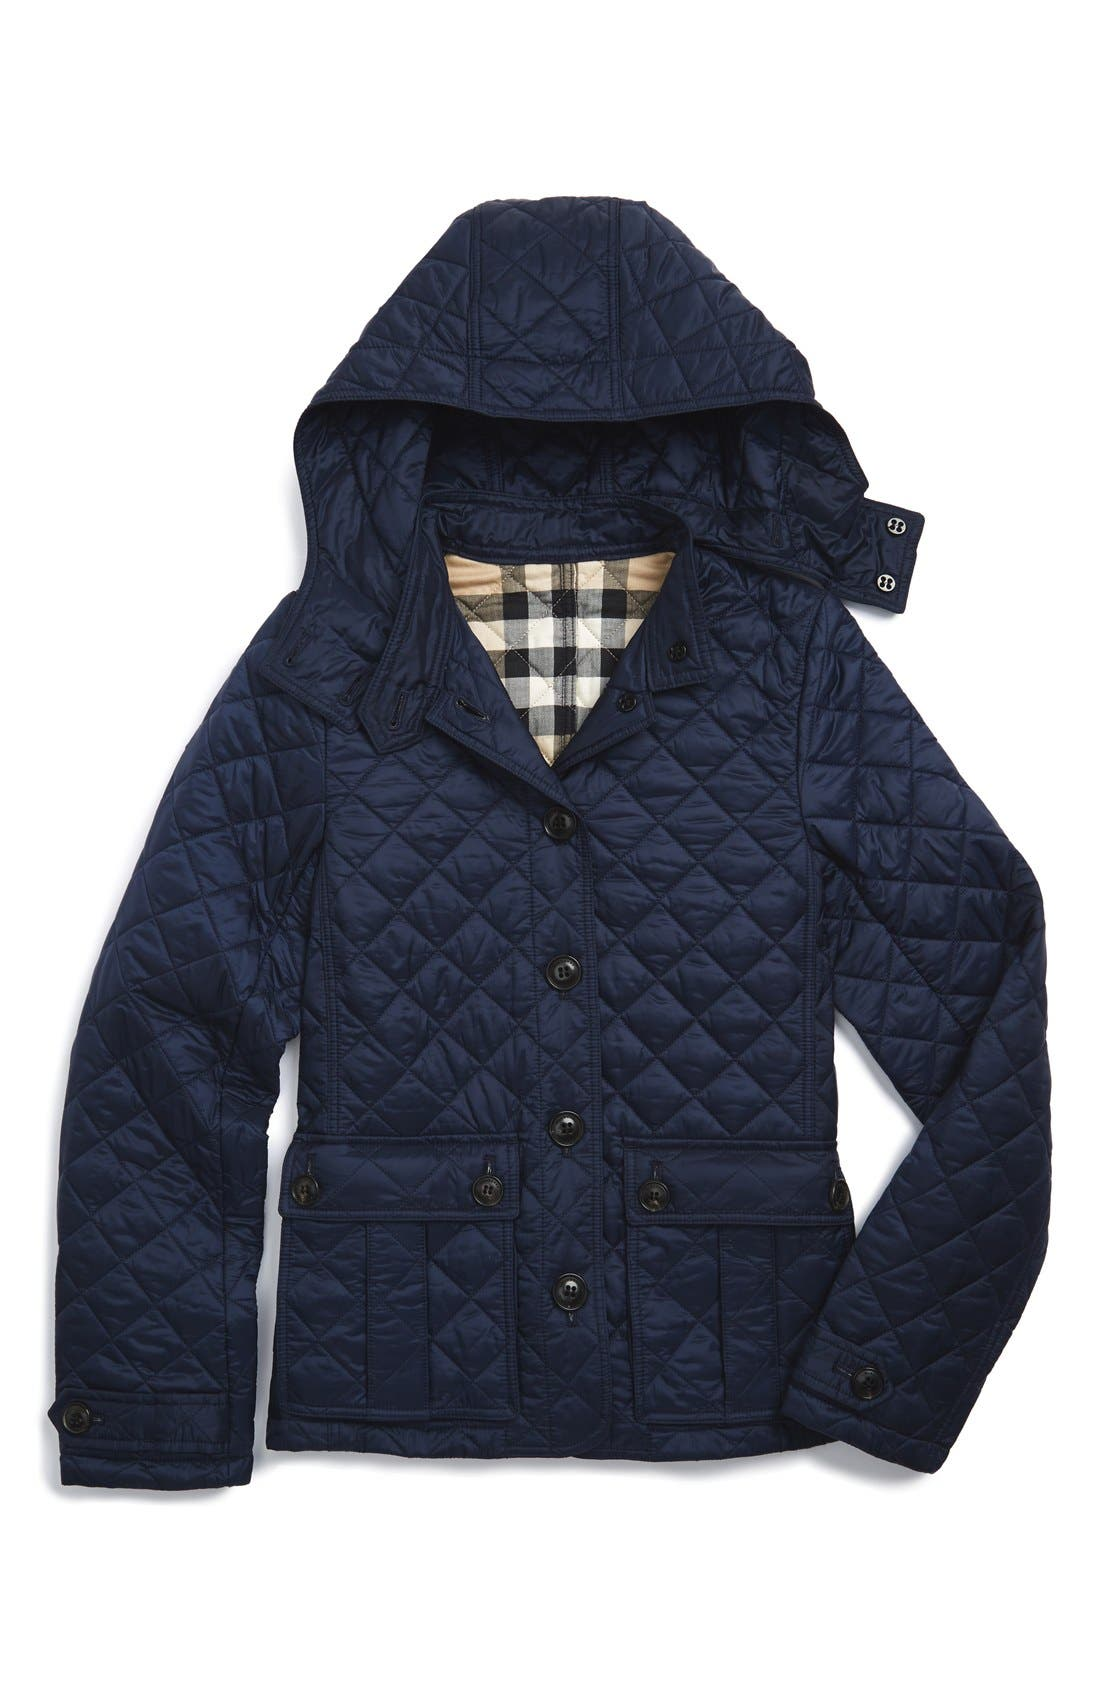 BURBERRY, 'Tiggsmoore' Diamond Quilted Jacket, Main thumbnail 1, color, 409